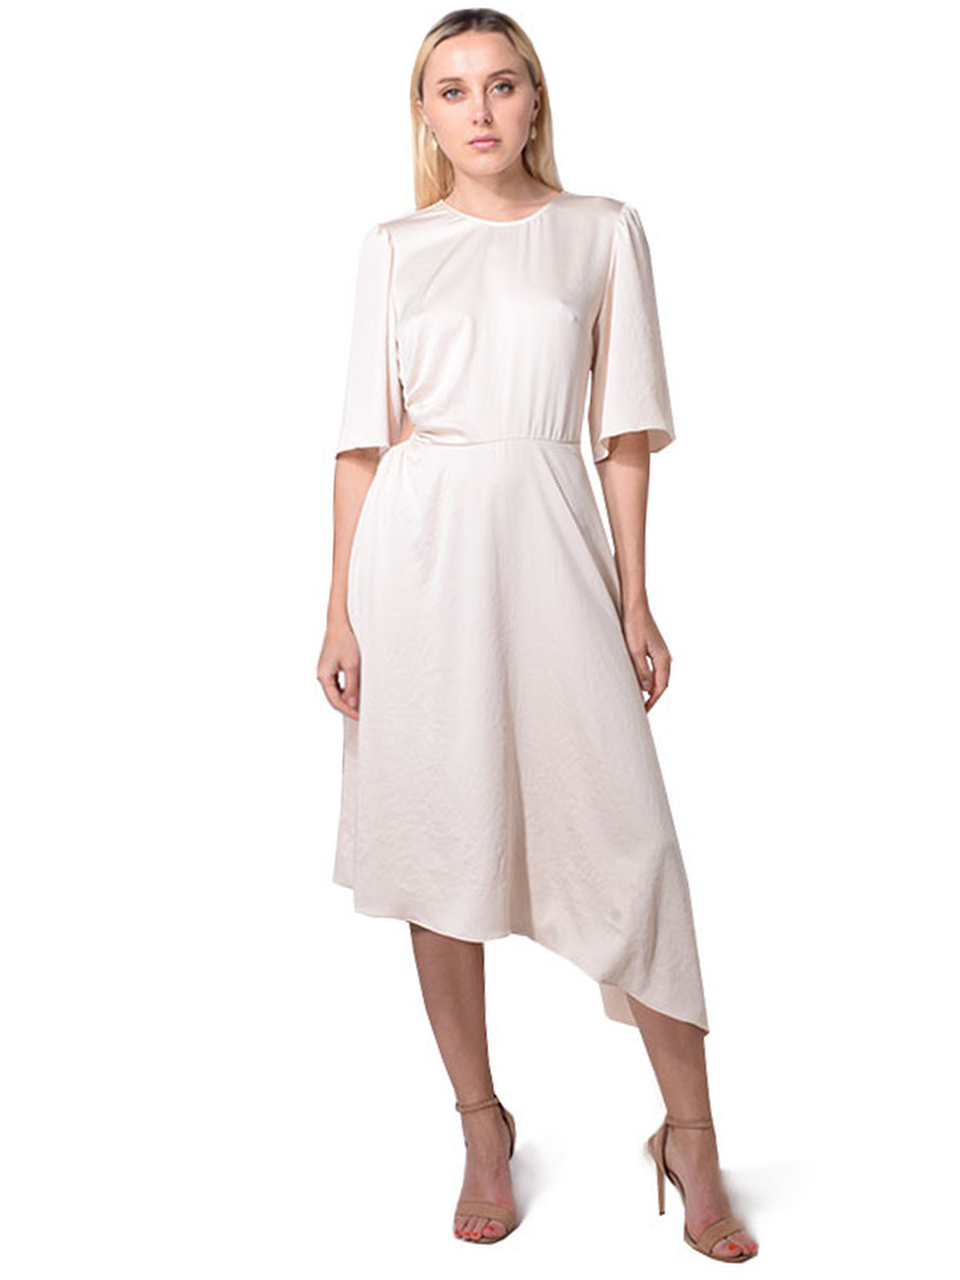 X1https://cdn11.bigcommerce.com/s-3wu6n/products/32014/images/103333/Bash_Nora_Flutter_Sleeve_Midi_Dress_in_Champagne_back__27953.1560296869__73743.1560459338.244.365.jpg?c=2X2